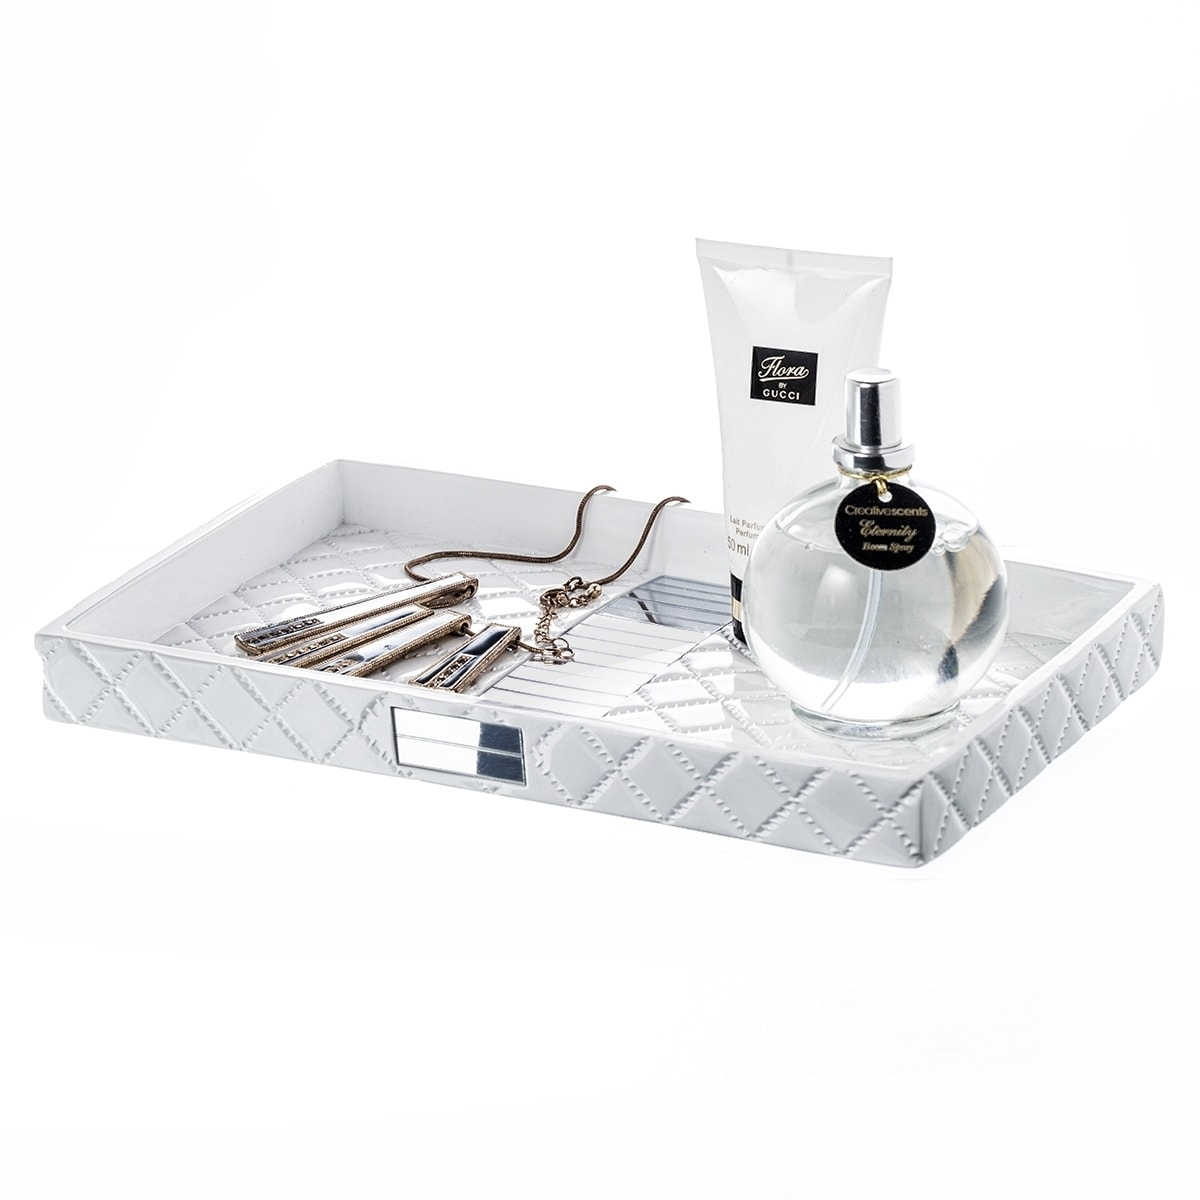 Quilted Mirror Vanity Tray For Arranging Perfume Jewelry Makeup On Sale Overstock 25729964